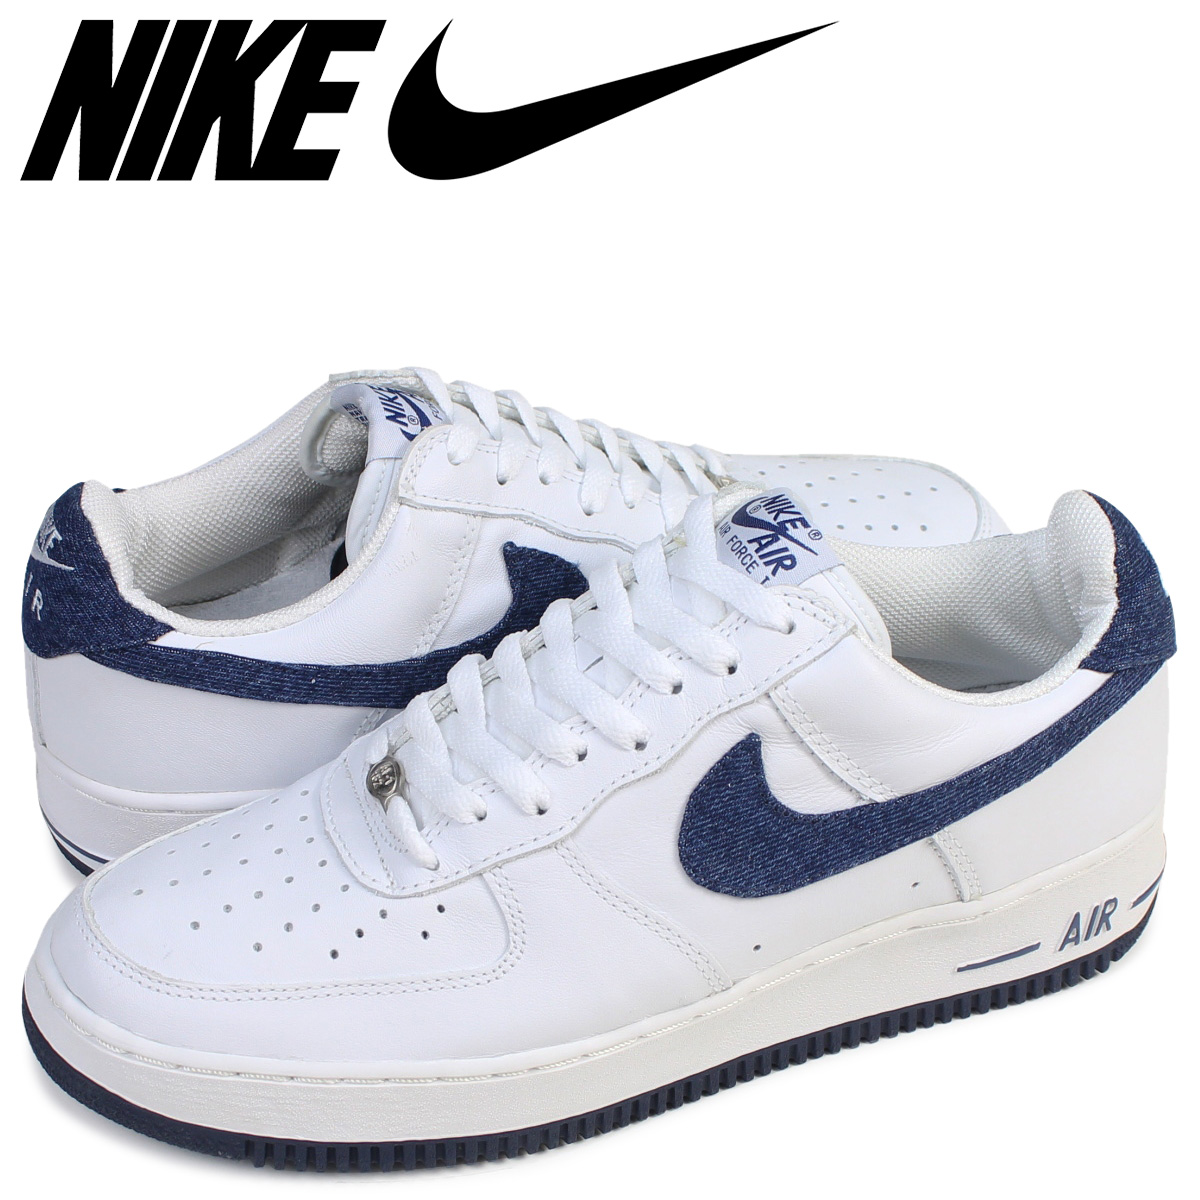 superior quality 1f9ab bc614 Nike NIKE air force 1 sneakers AIR FORCE 1 LOW 624,040-143 low men shoes  white